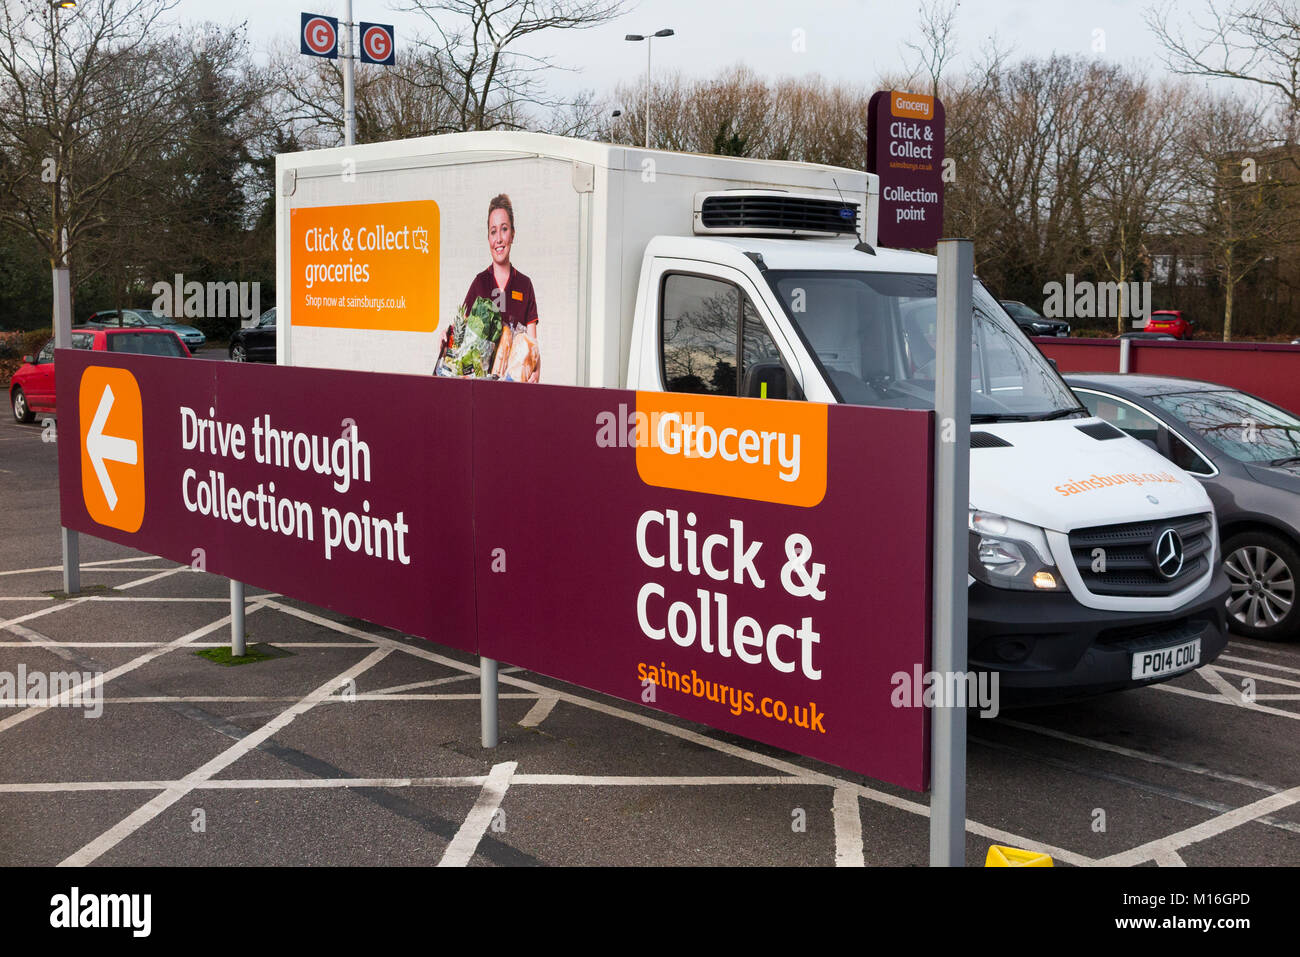 sainsbury 39 s delivery van stock photos sainsbury 39 s delivery van stock images alamy. Black Bedroom Furniture Sets. Home Design Ideas